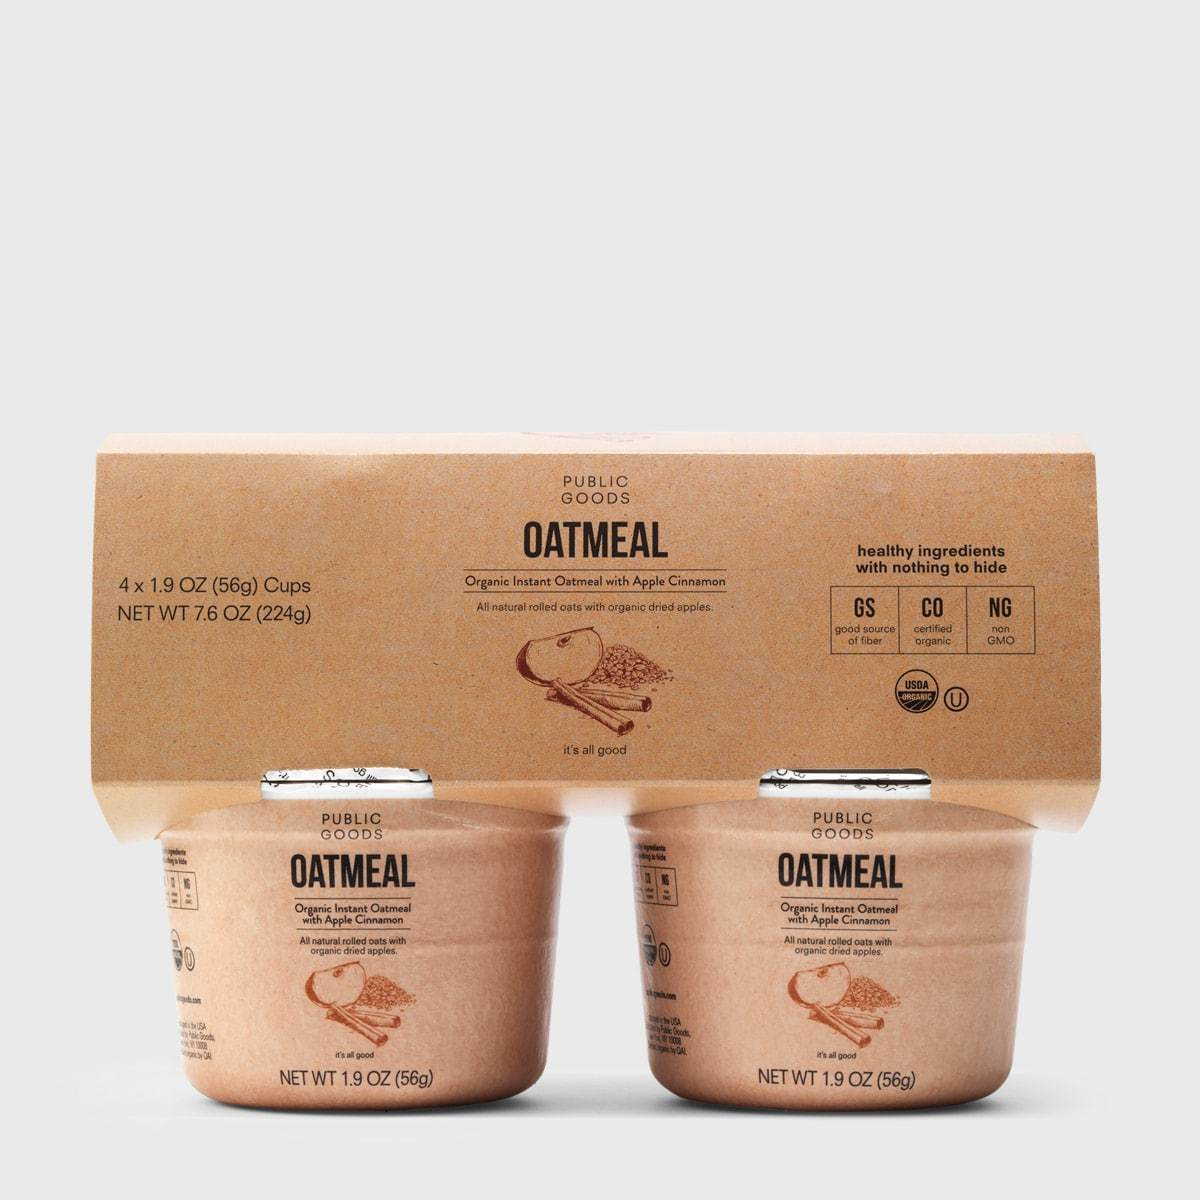 Public Goods Grocery Apple Cinnamon Oatmeal Cups